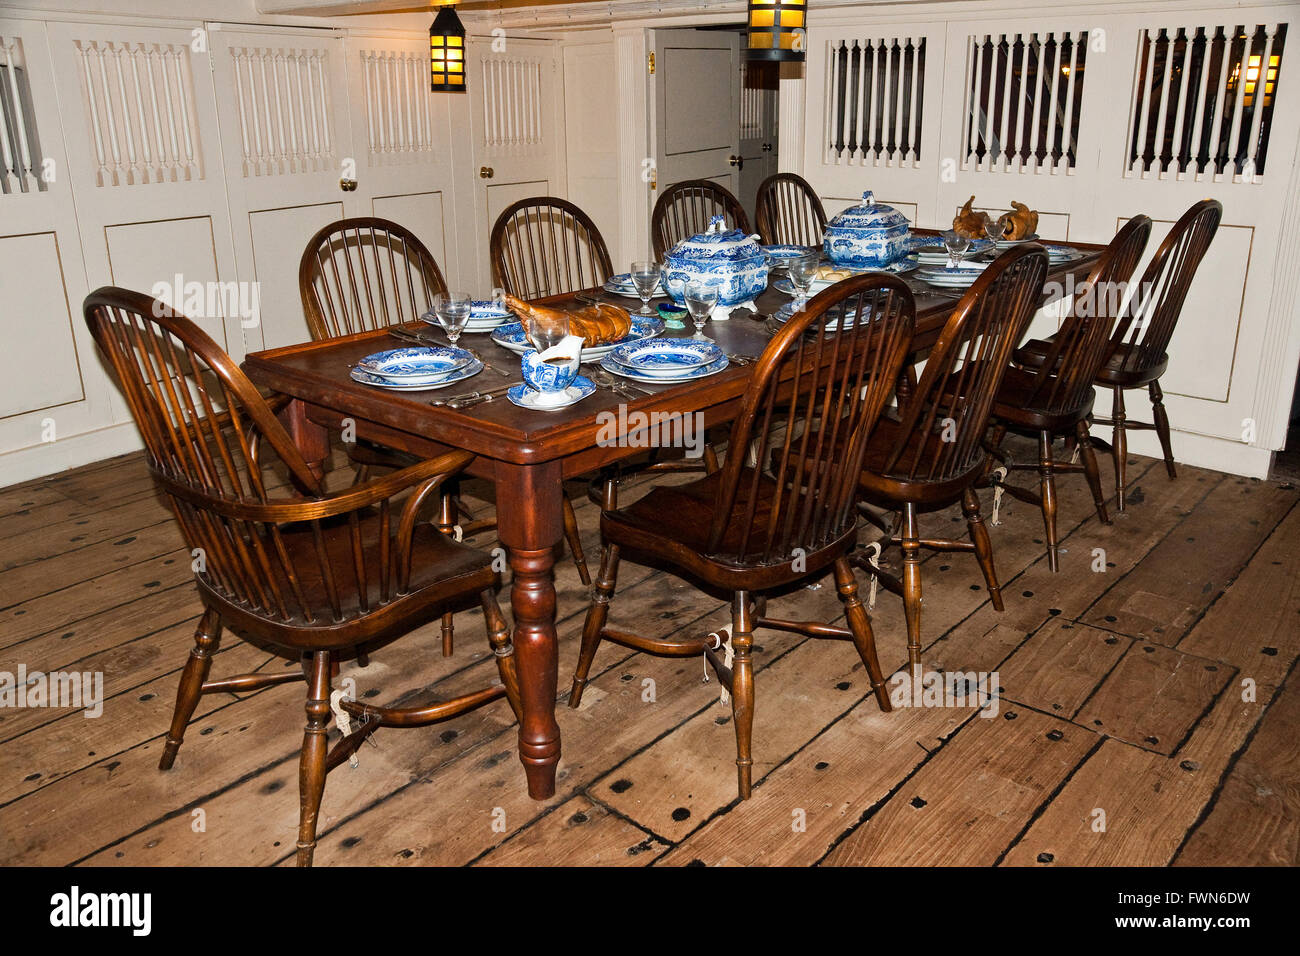 The Wardroom Table Set For Dinner Aboard HMS Trincomalee Nelson Era Frigate Restored And On Display In Hartlepool Co Durham